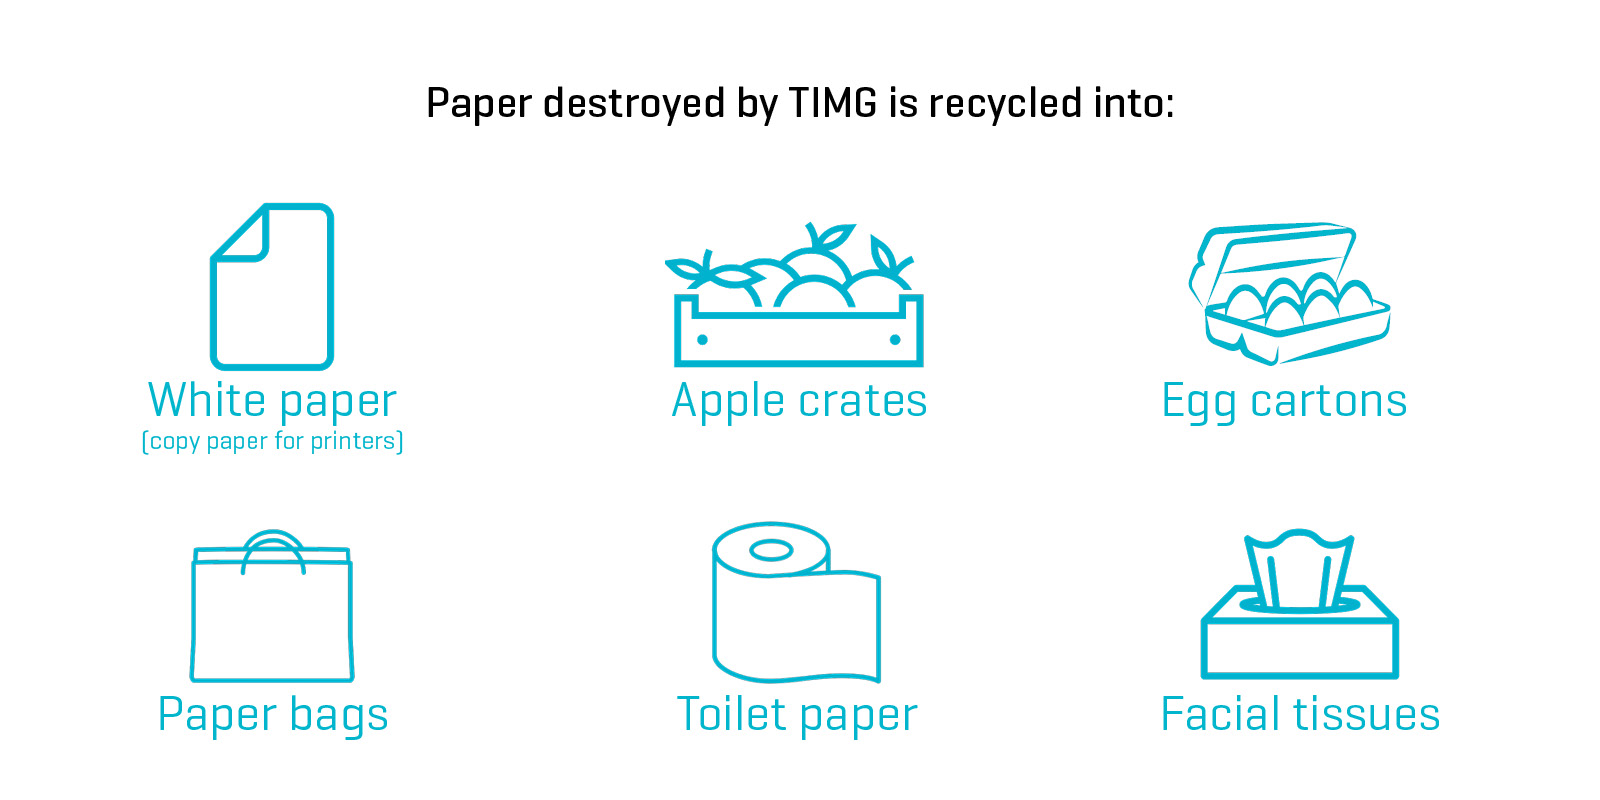 Paper destroyed by TIMG is recycled into